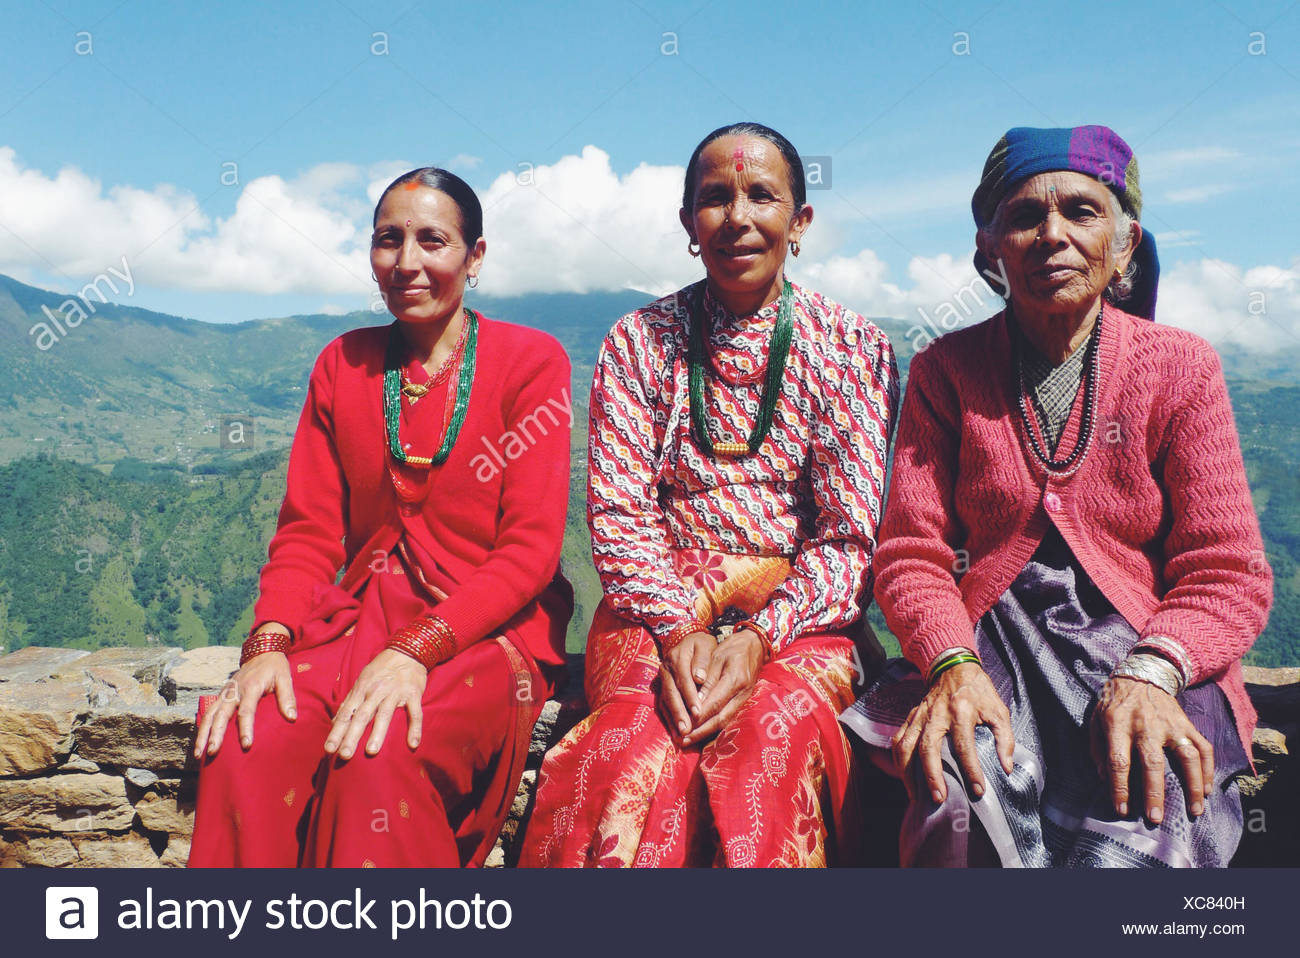 Nepal, Portrait of women sitting on stone wall in mountains - Stock Image